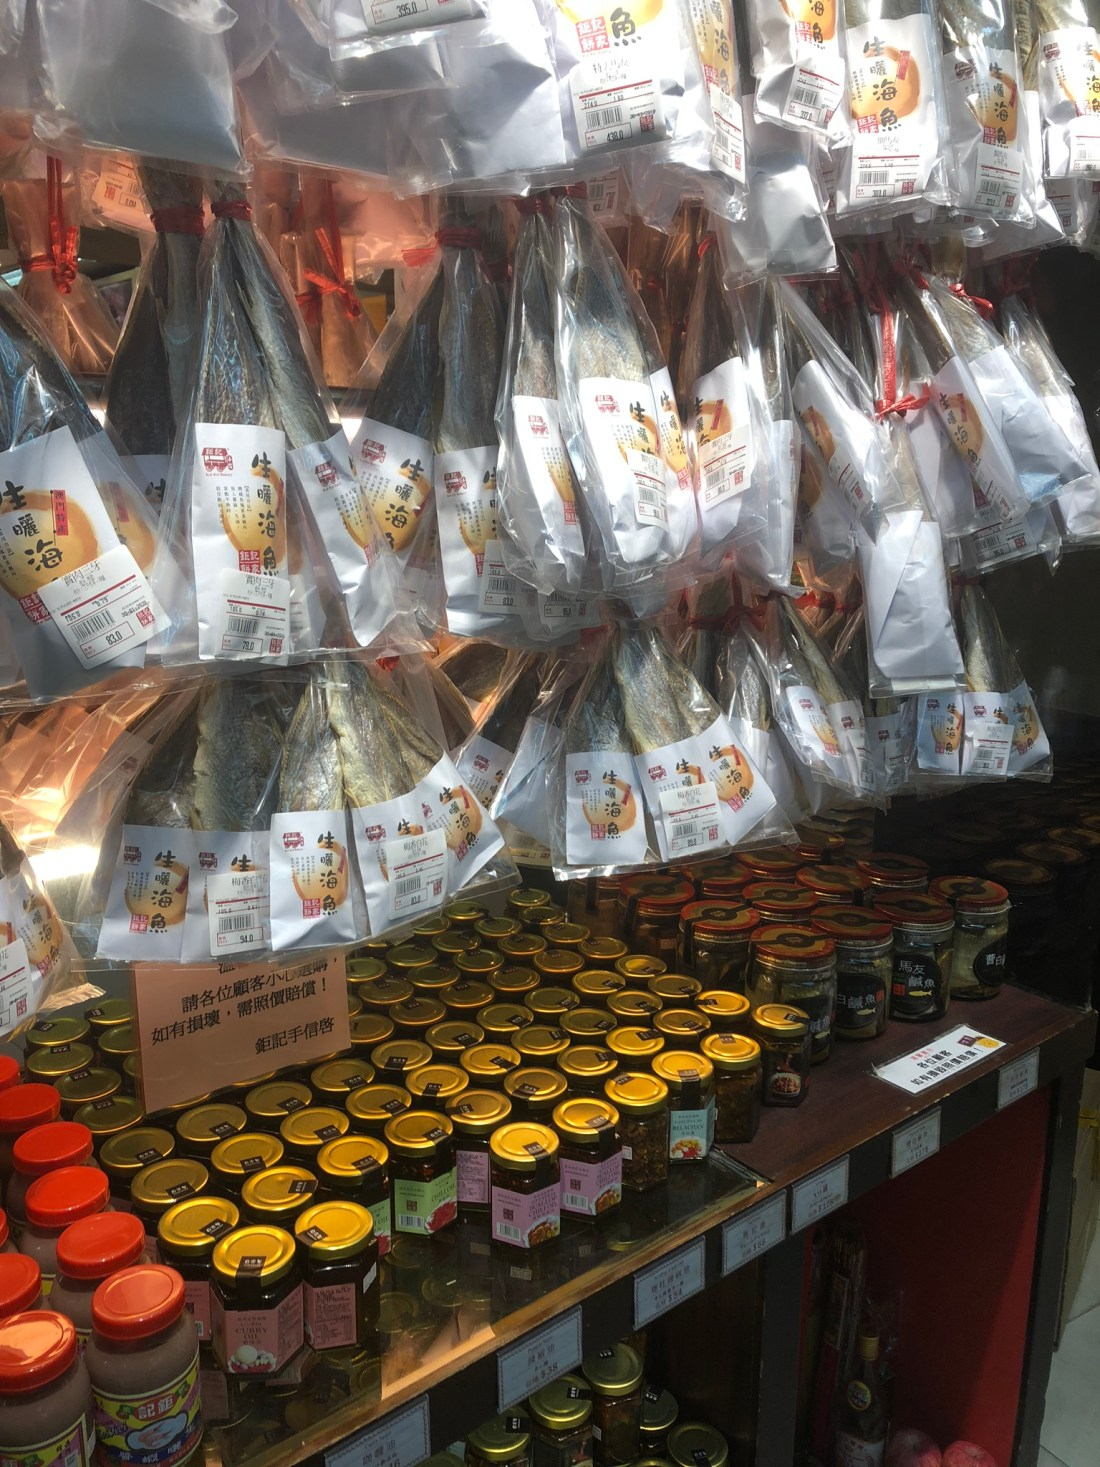 Portuguese store in Macau, China